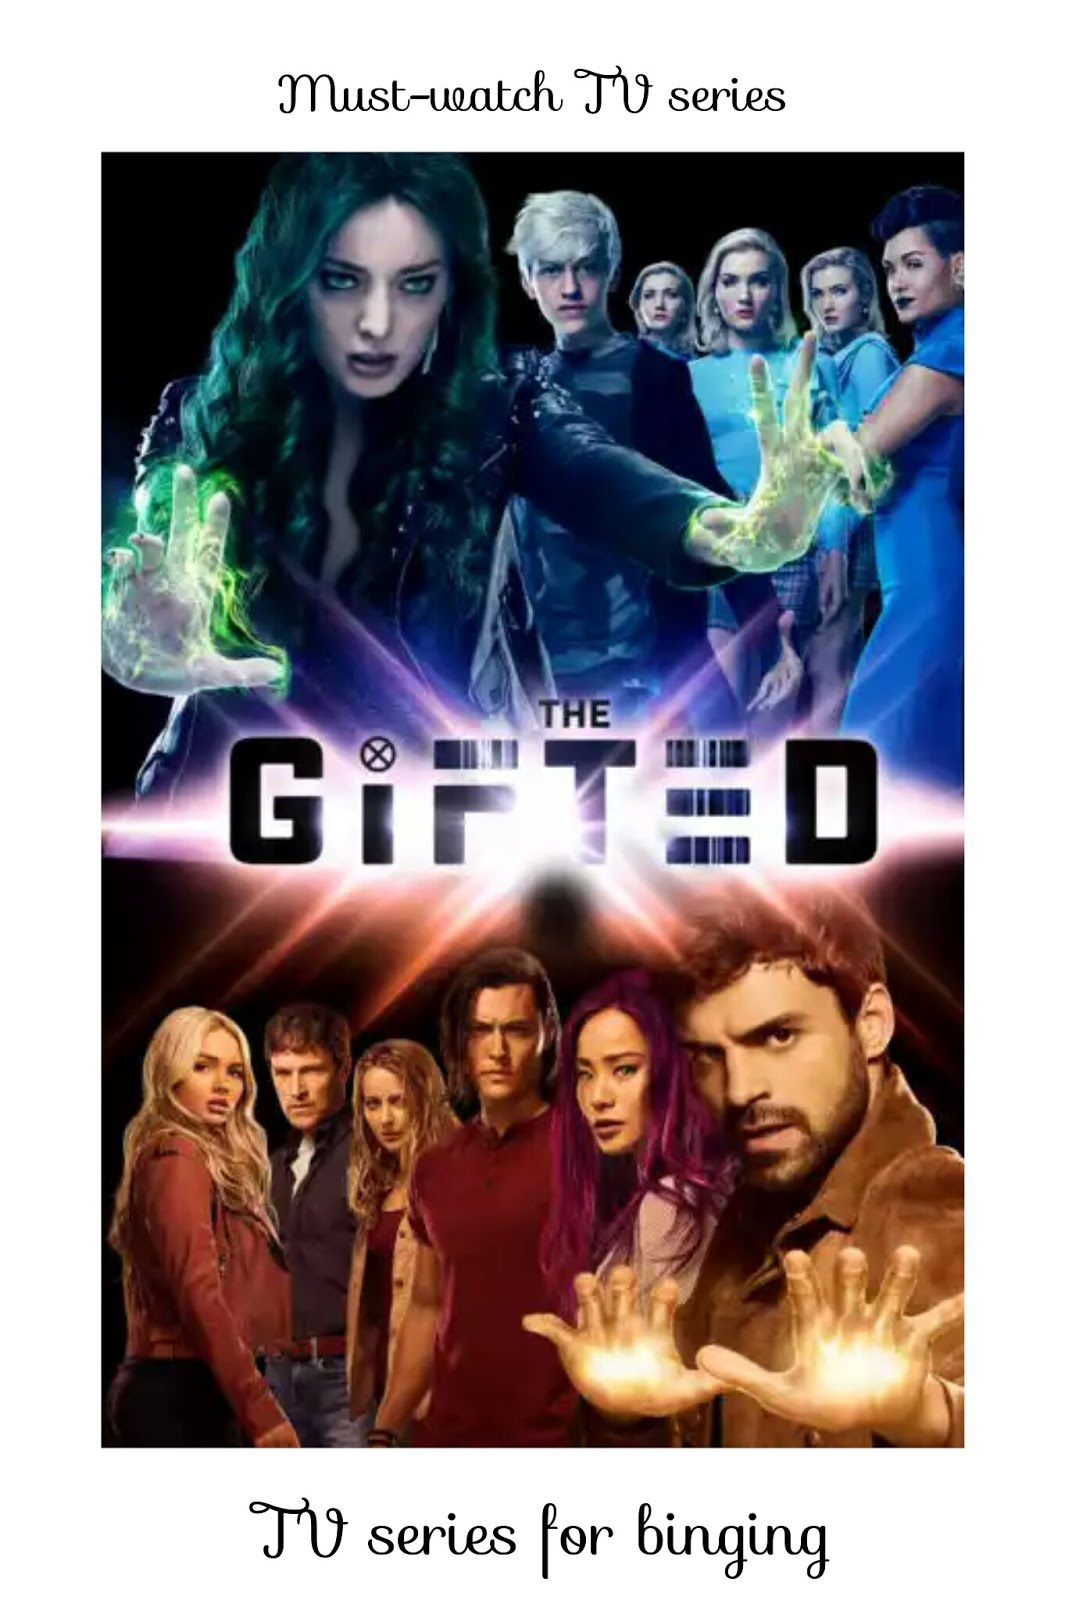 Legit Movies And Series Reviews The Gifted Tv Series Review